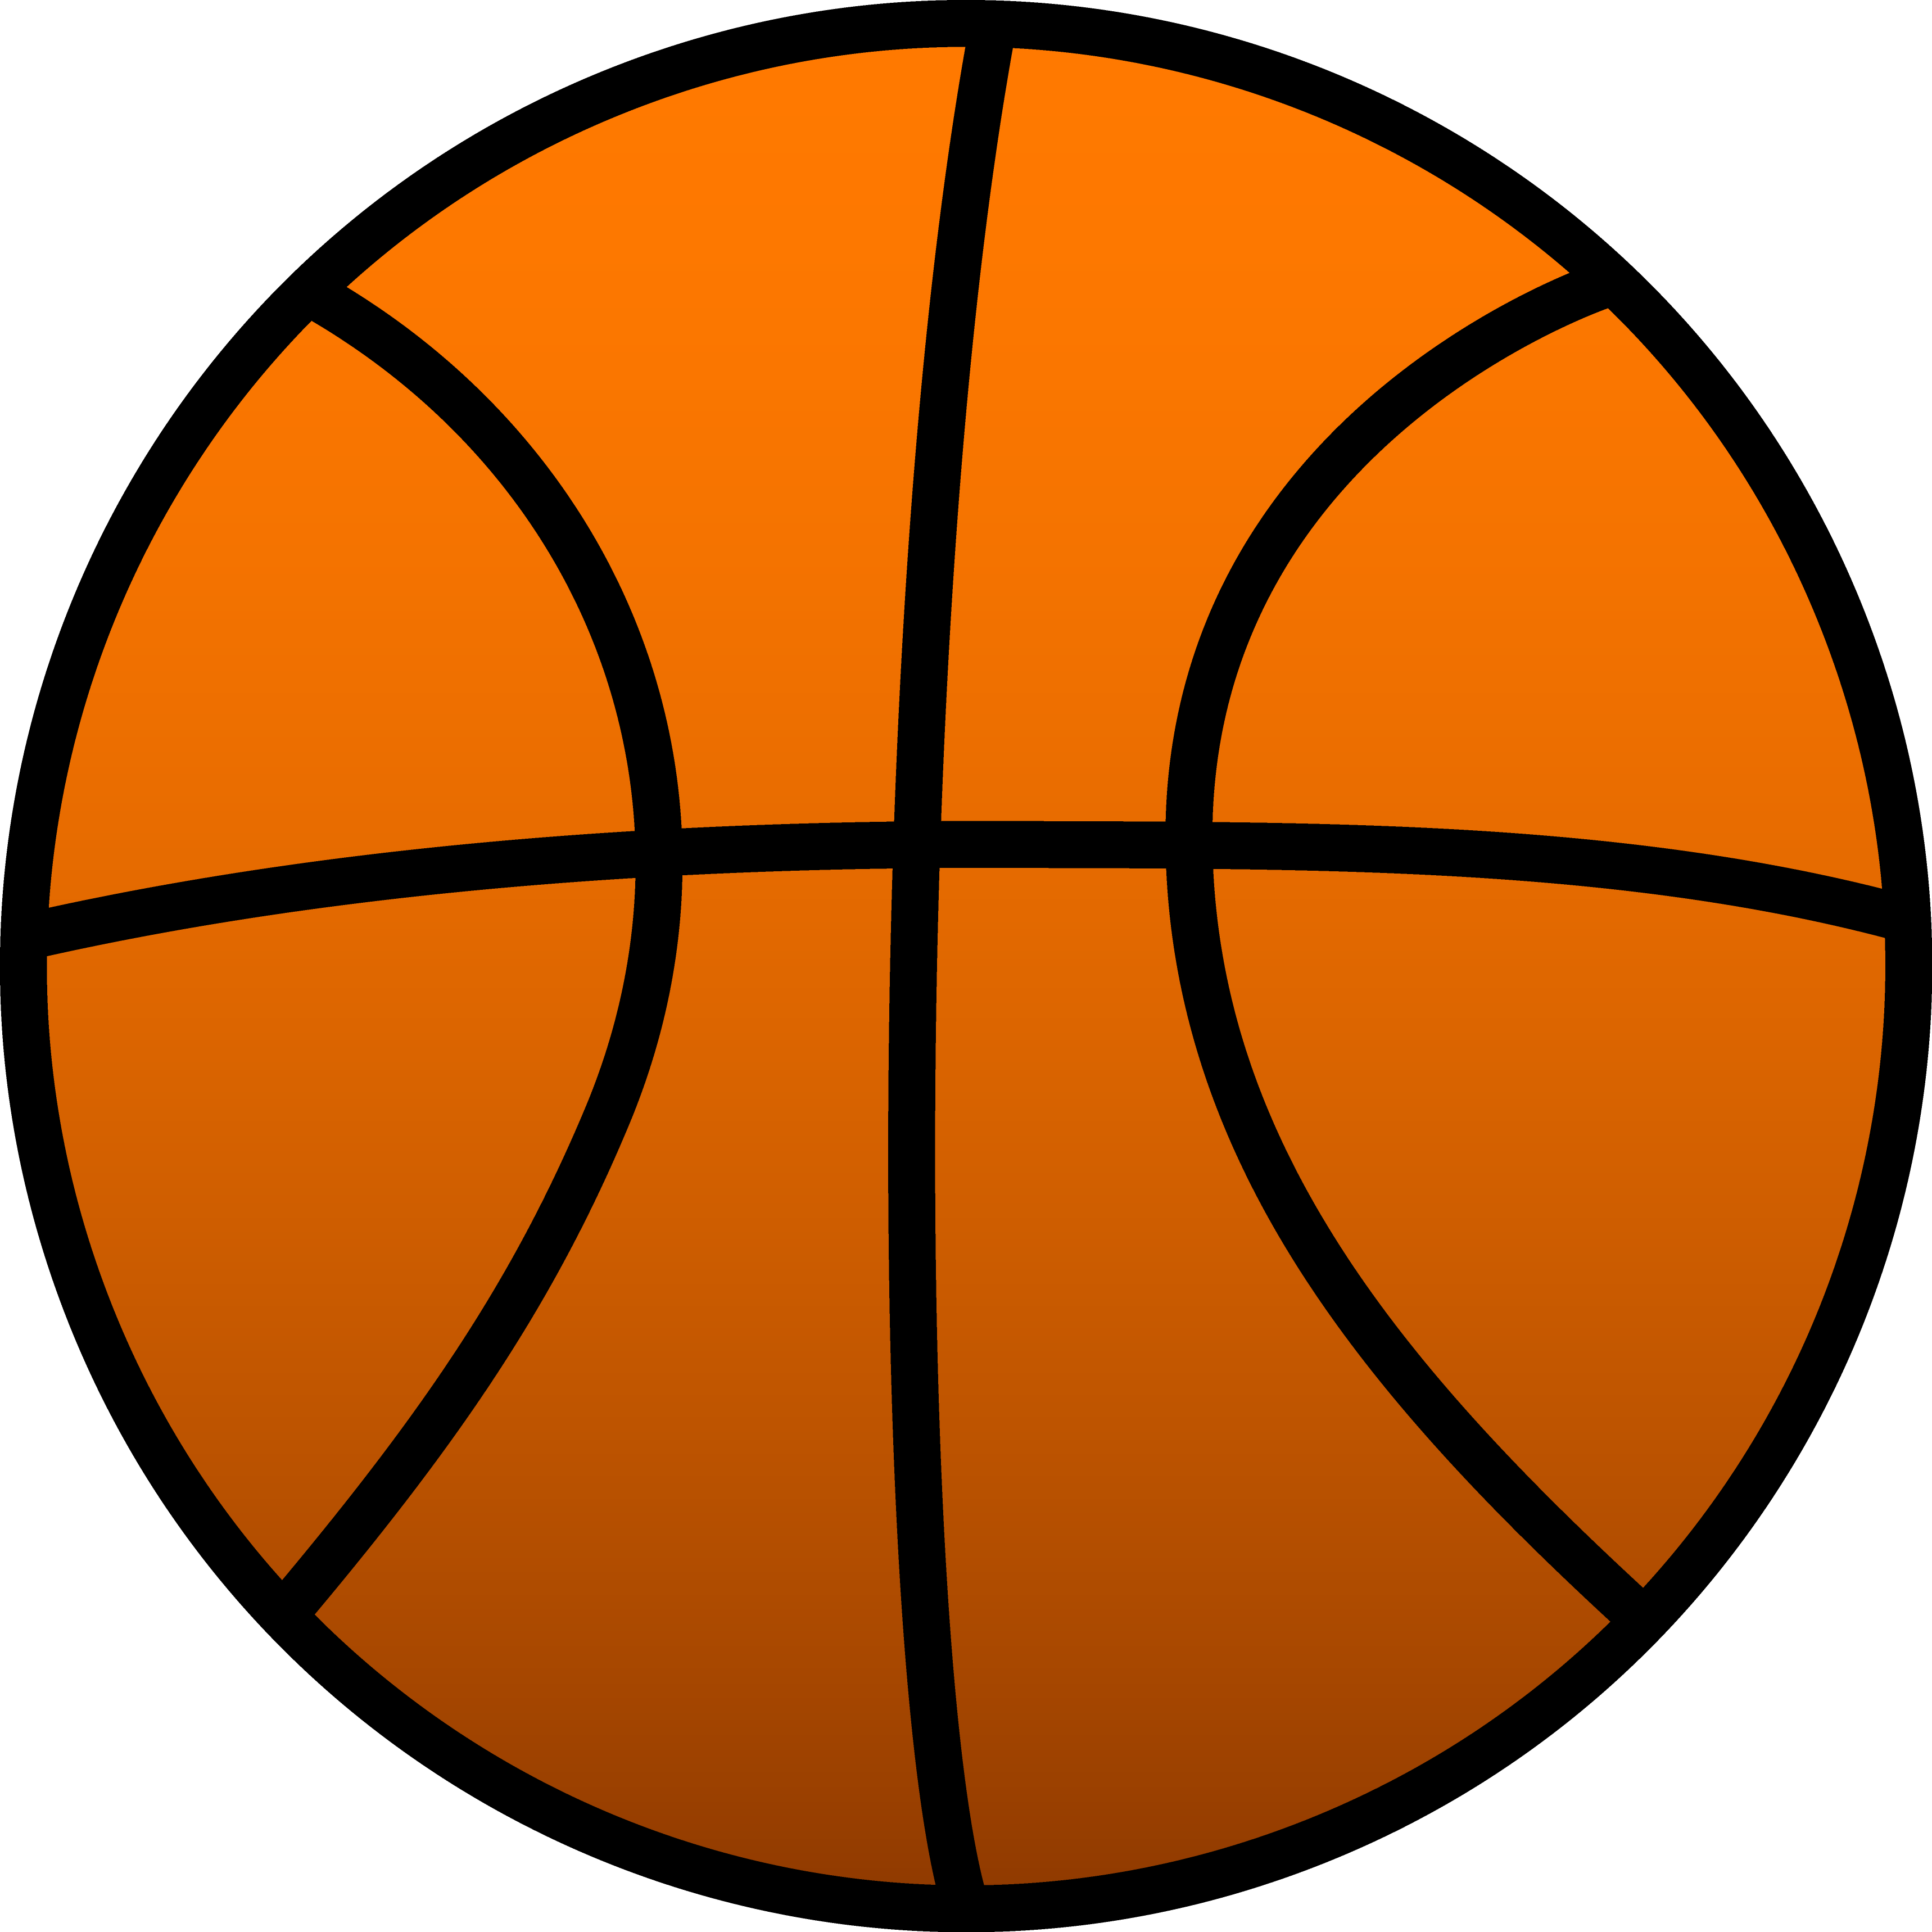 Hoop Clipart Black And White Axis Clipart Basketball Clipart 1 Png.